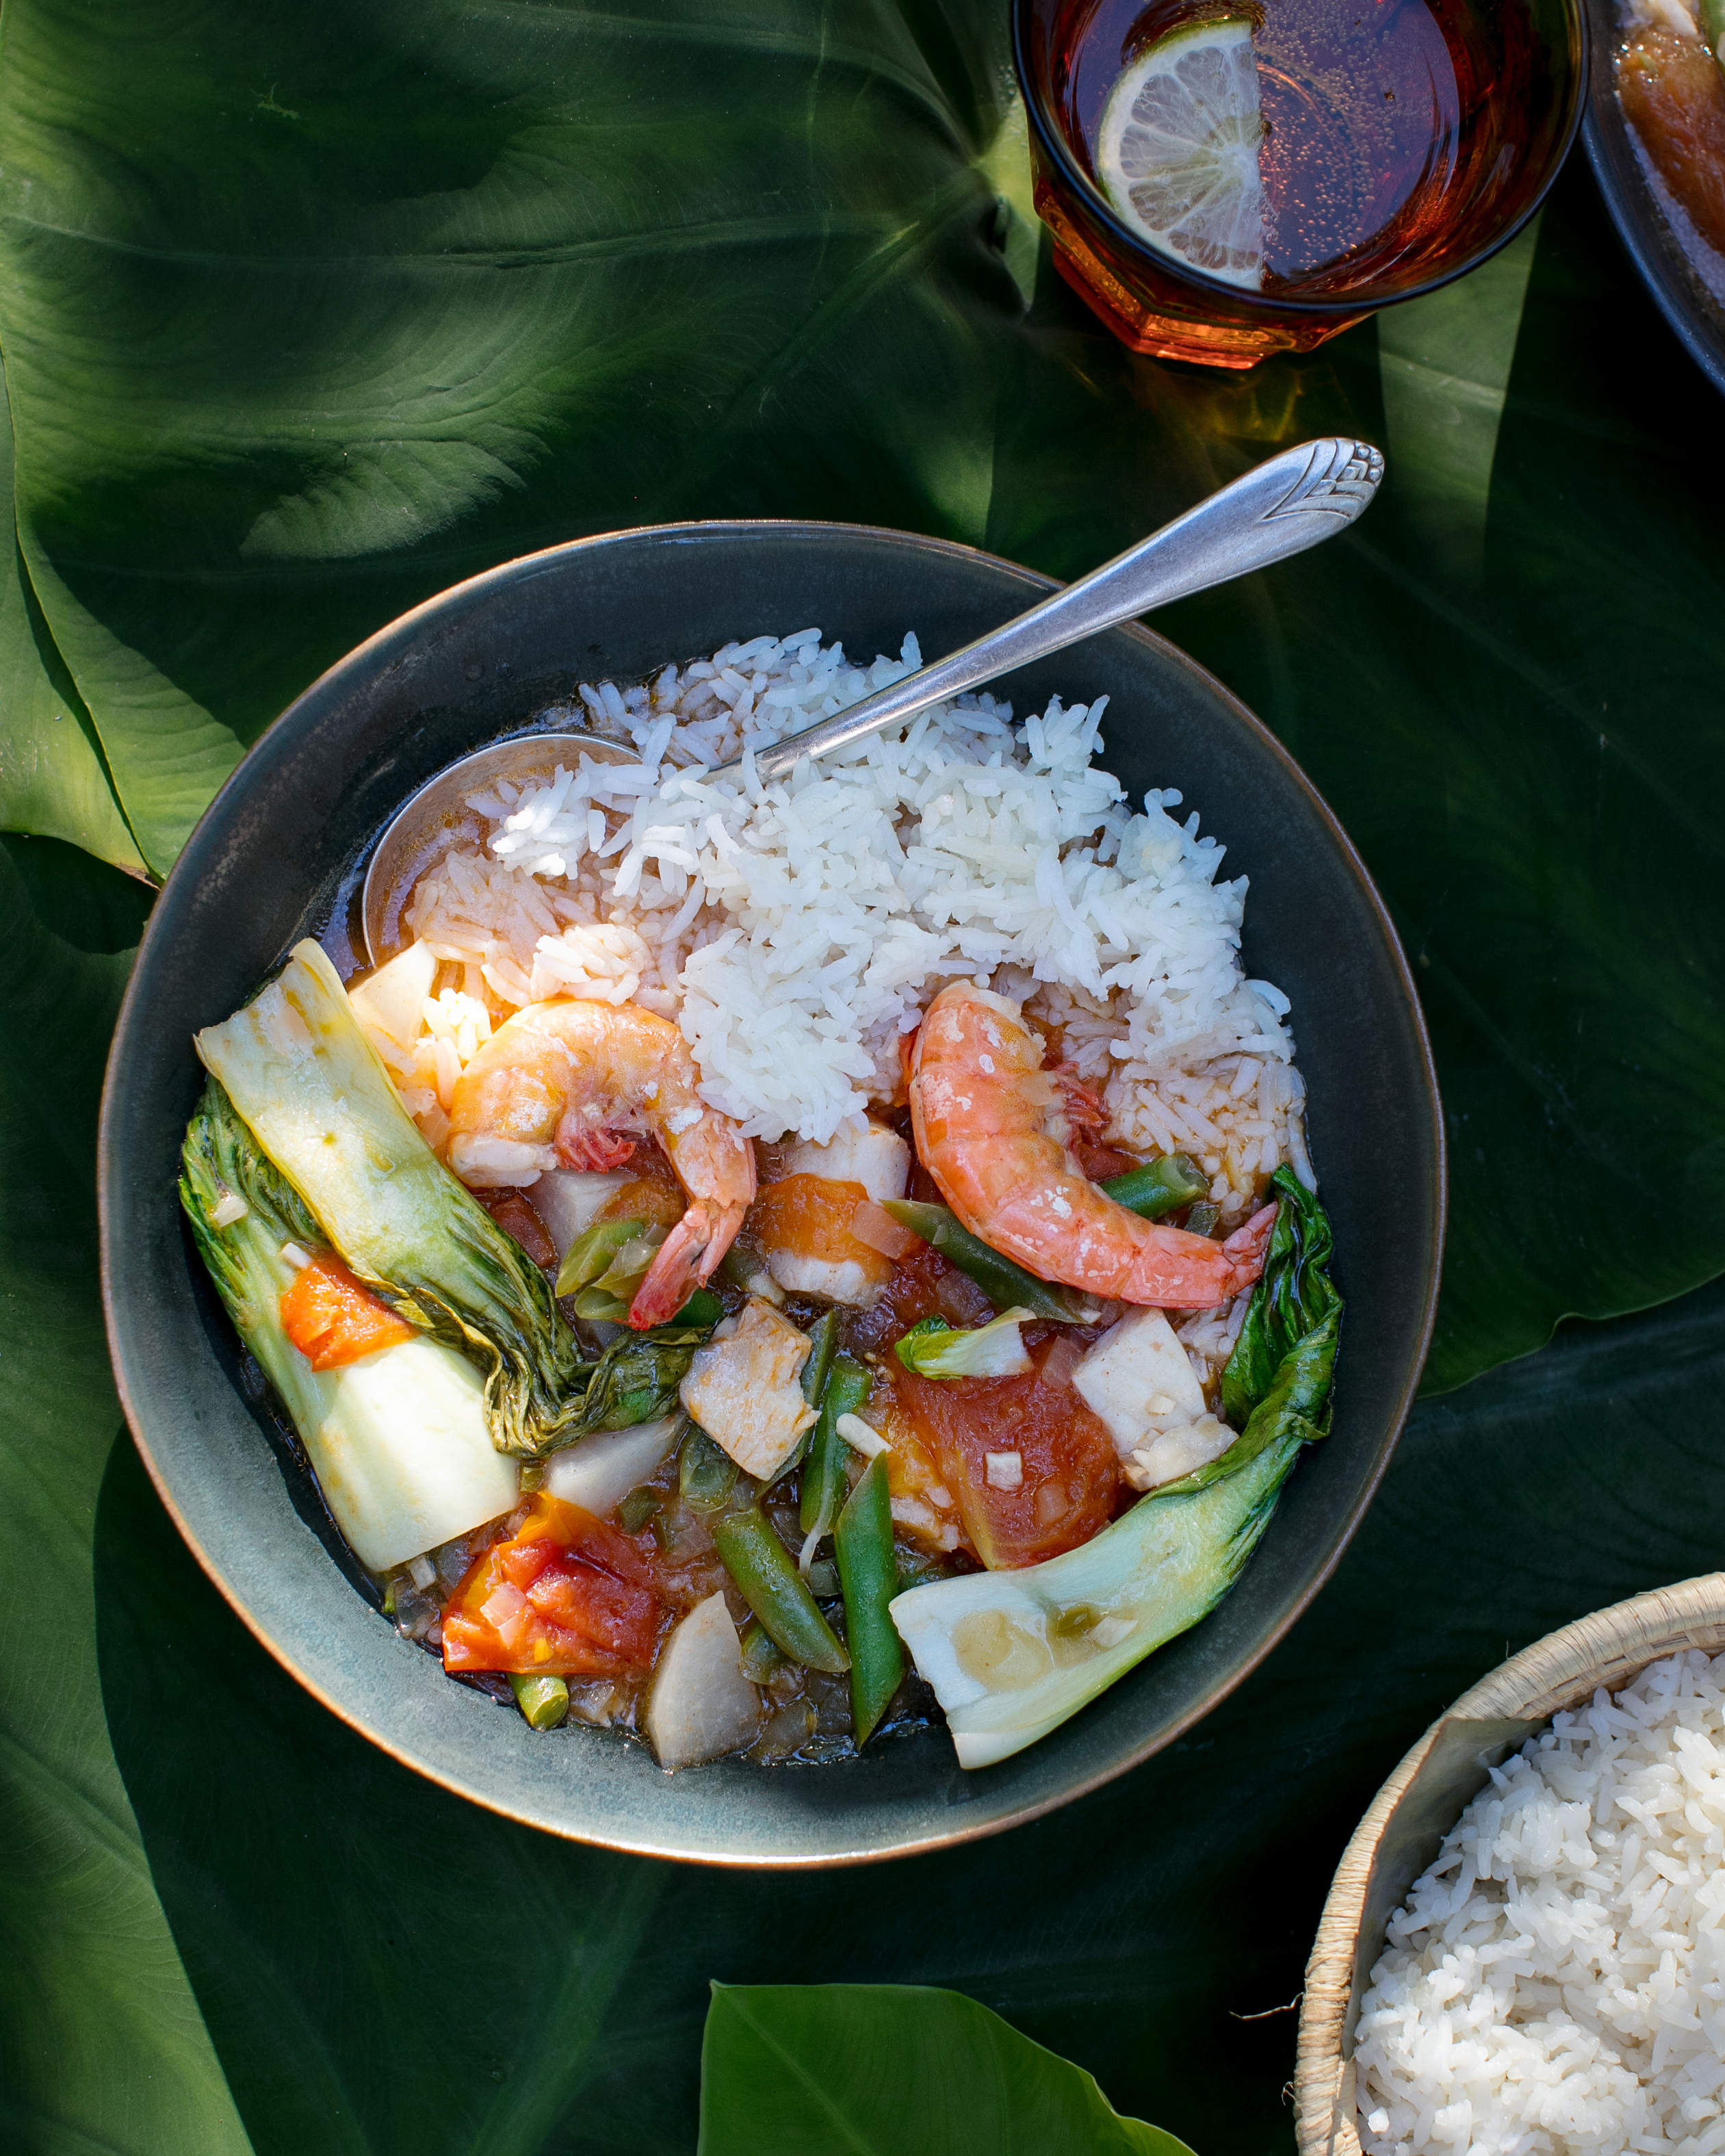 Shrimp And Fish Sinigang Tamarind Stew Kitchn